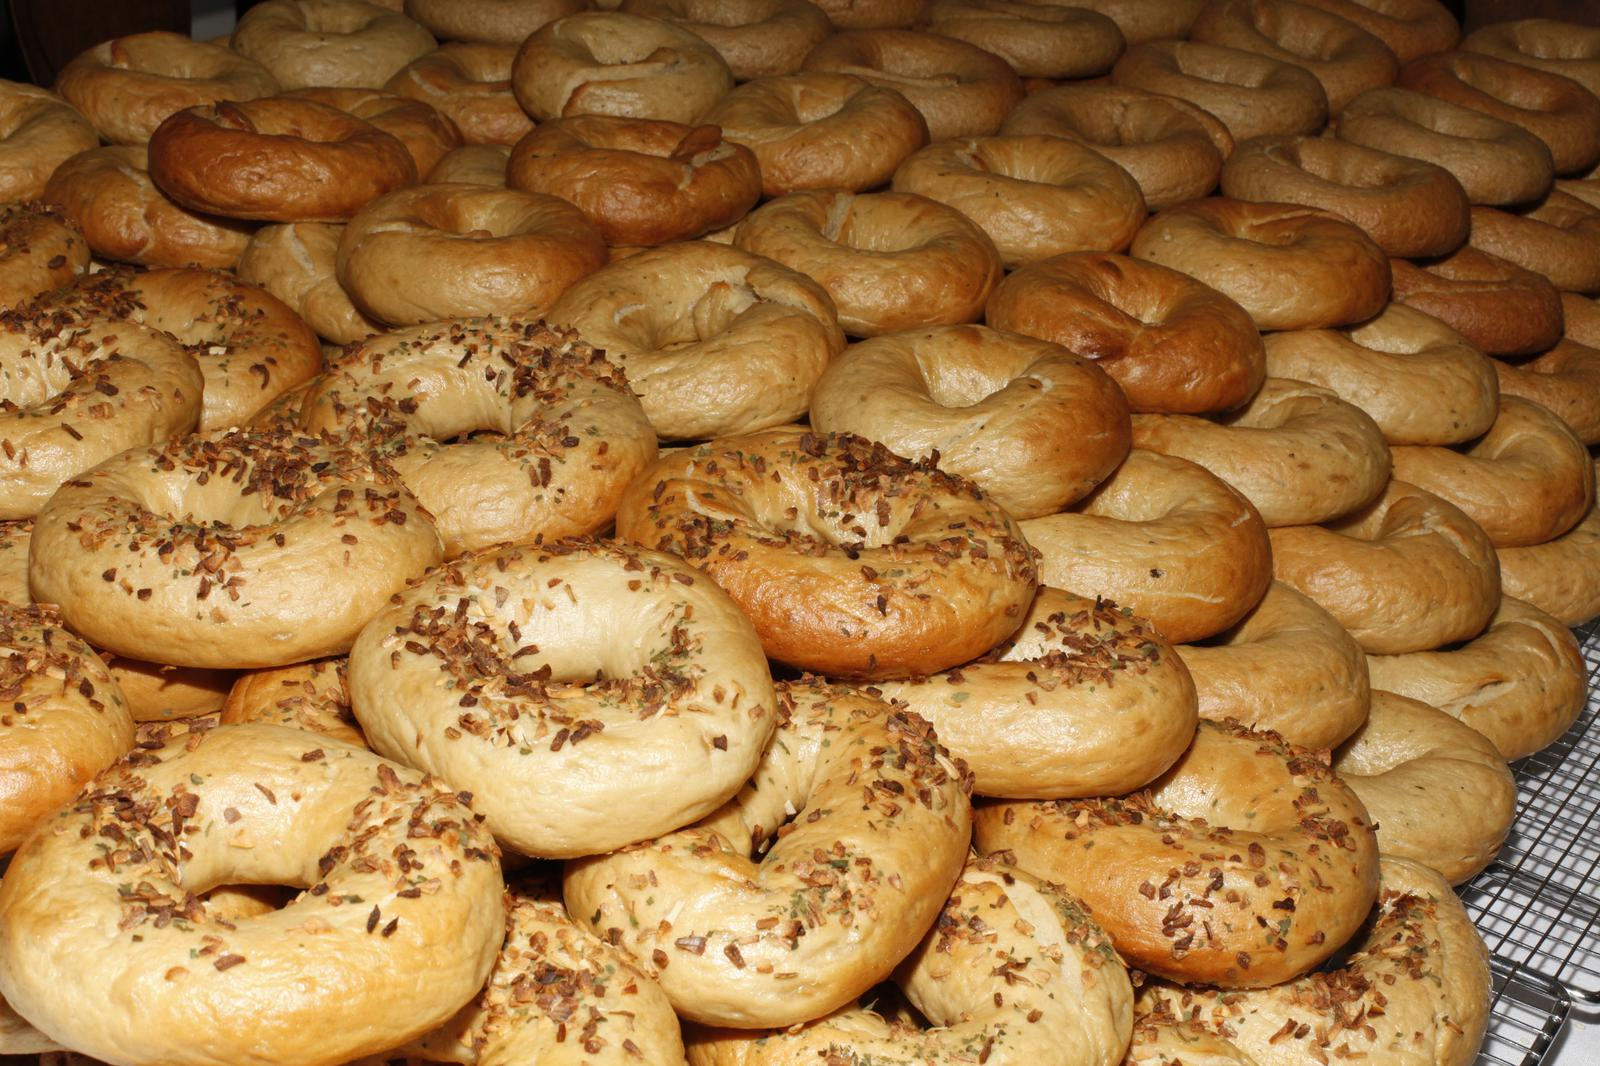 Our bagels